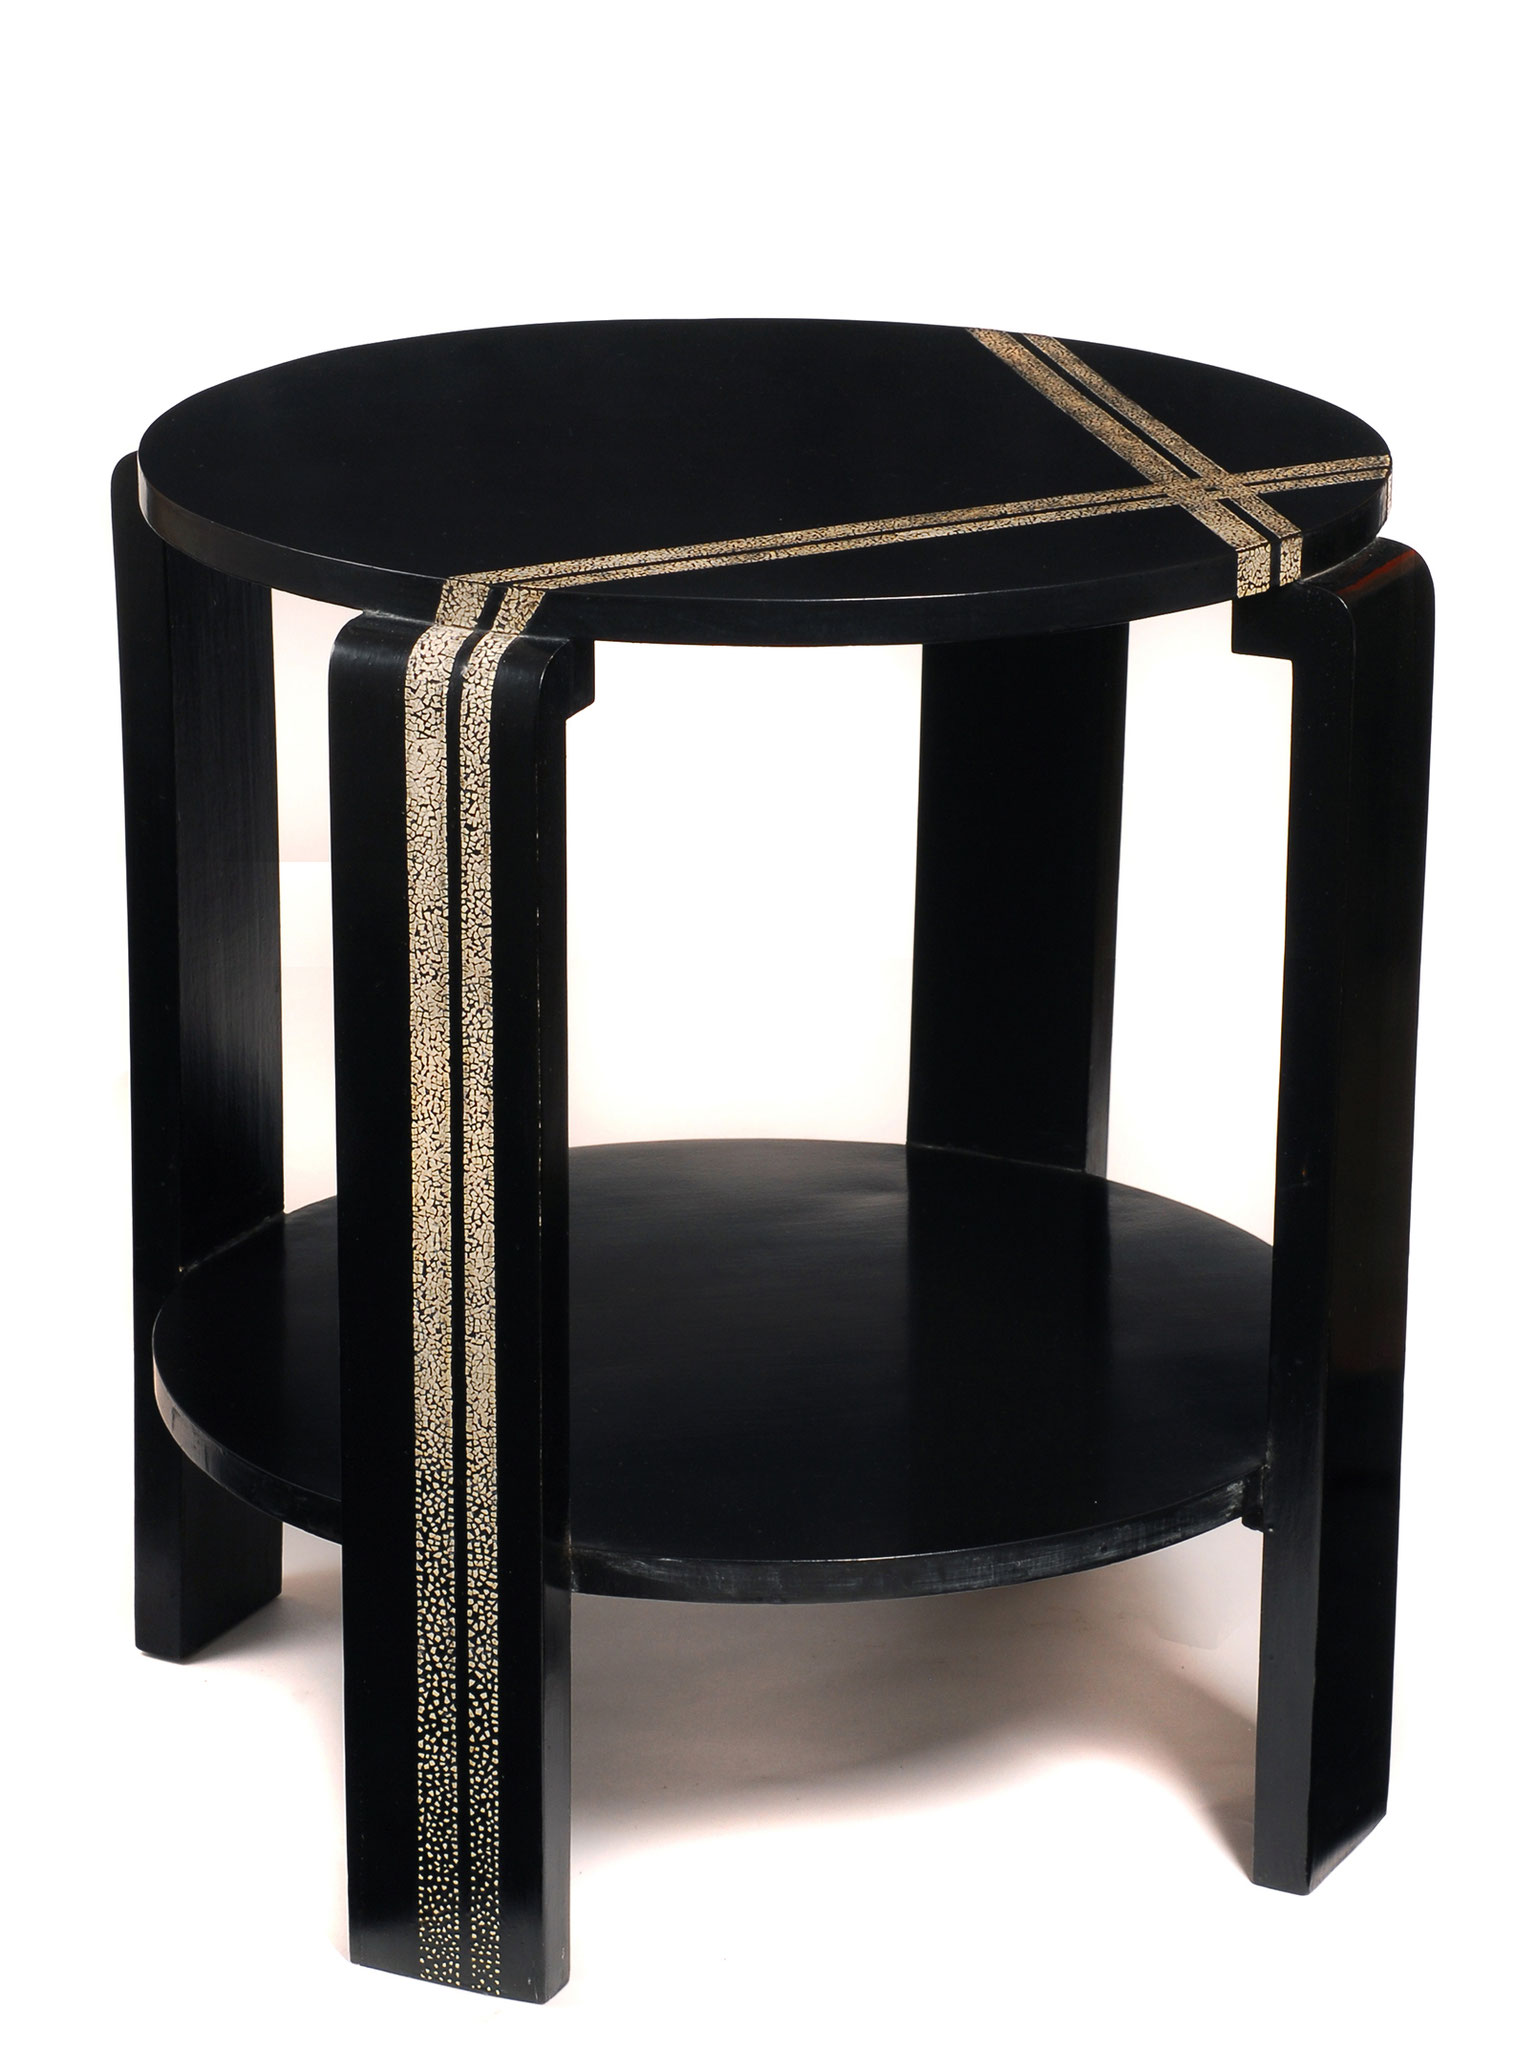 Low table lacquered with eggshell inlays - Custom made piece from a 1930 inspiration - 58 x 54 cm